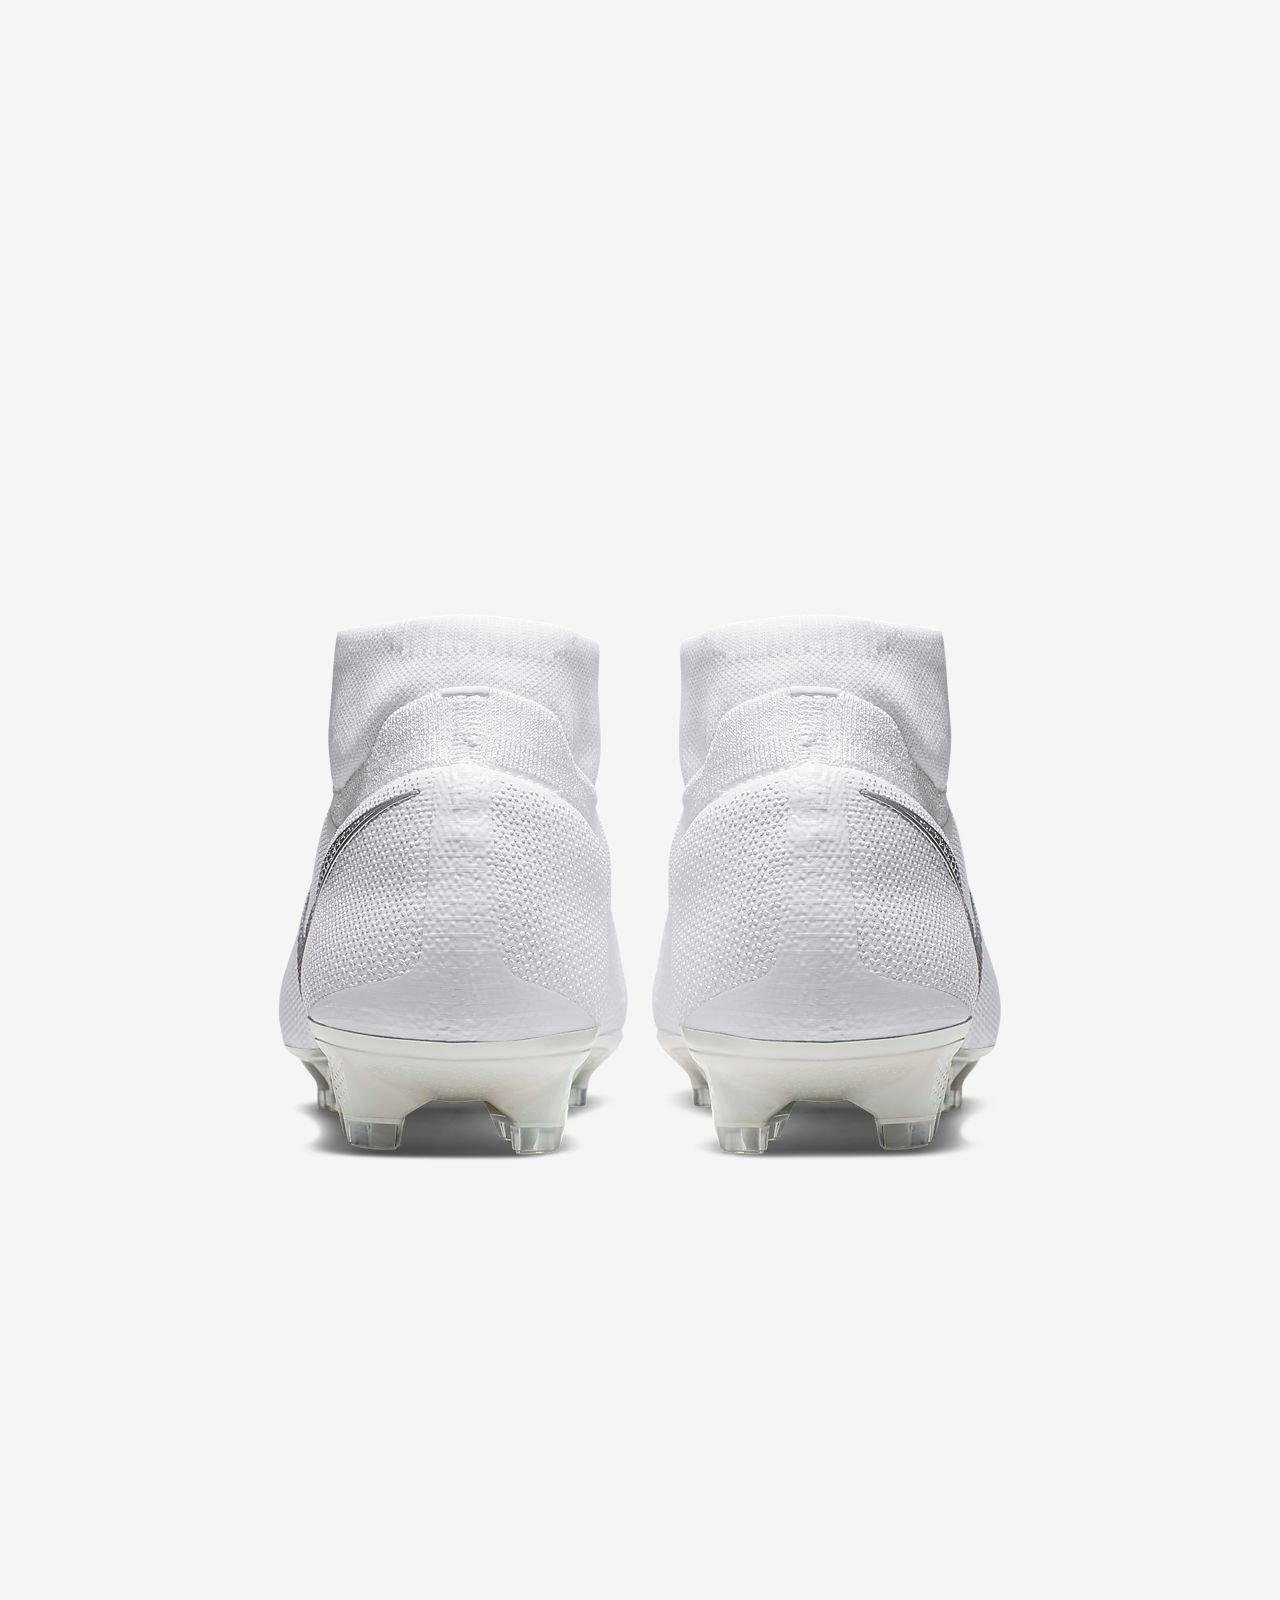 new style 648b8 00485 Nike Phantom Vision Elite Dynamic Fit FG Firm-Ground Soccer Cleat